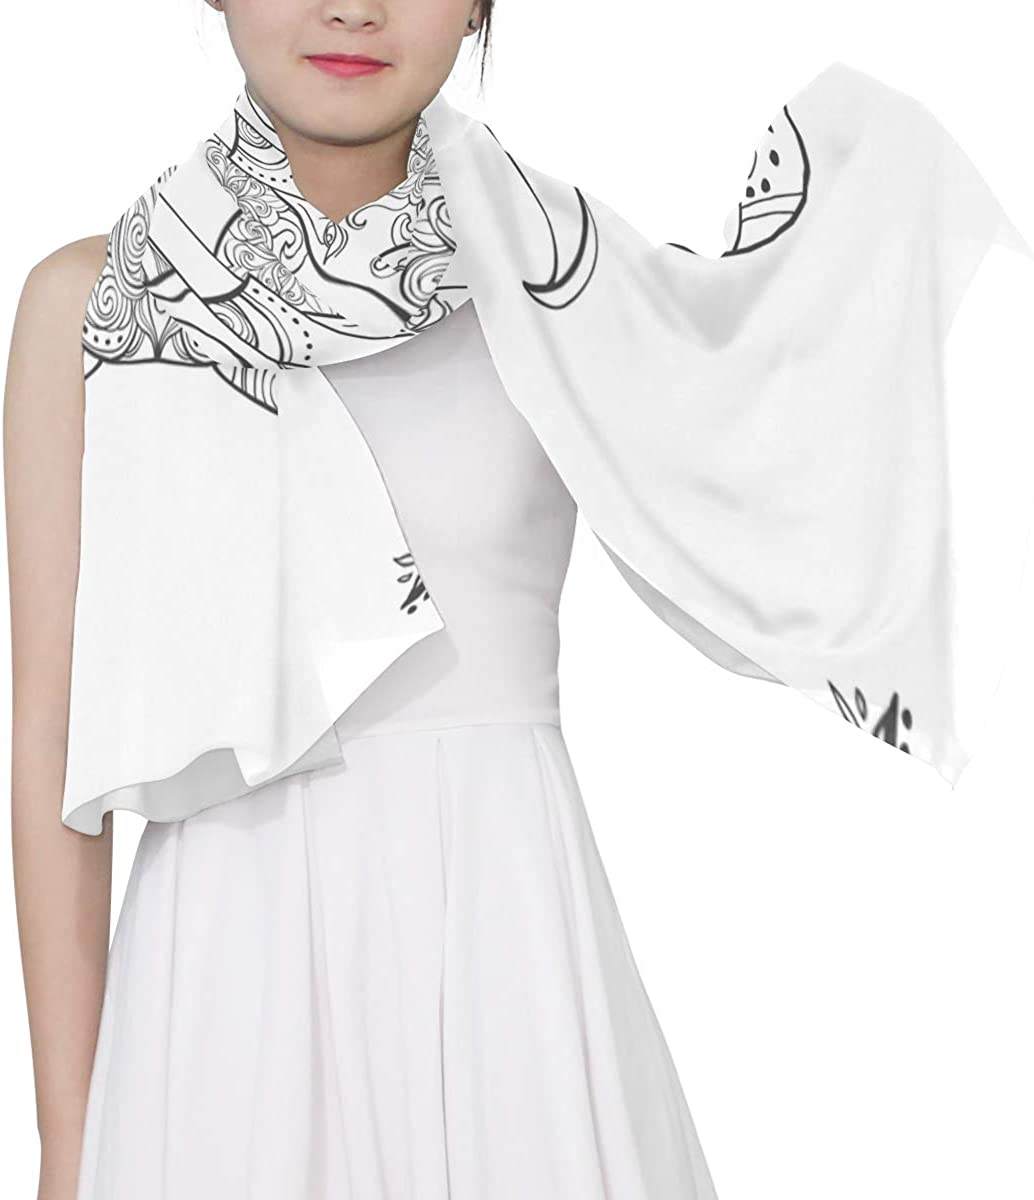 Lines Make Up Elephant Unique Fashion Scarf For Women Lightweight Fashion Fall Winter Print Scarves Shawl Wraps Gifts For Early Spring